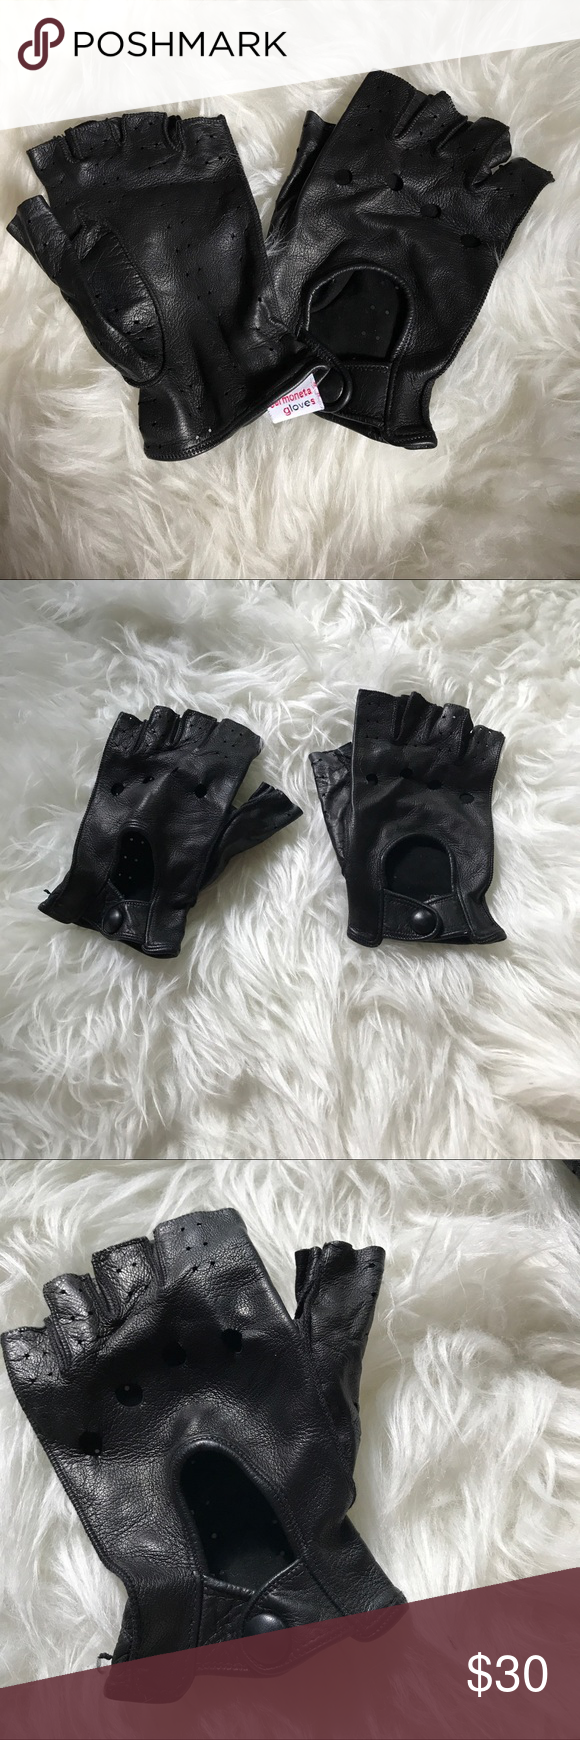 Sermonata Black Leather Fingerless Gloves Channel Karl Lagerfeld from Chanel with these fabulous fingerless leather gloves! Purchased at the Sermonata Glove Store in Rome, Italy. These are the softest leather gloves EVER. Size 7. Worn once. sermonata Accessories Gloves & Mittens